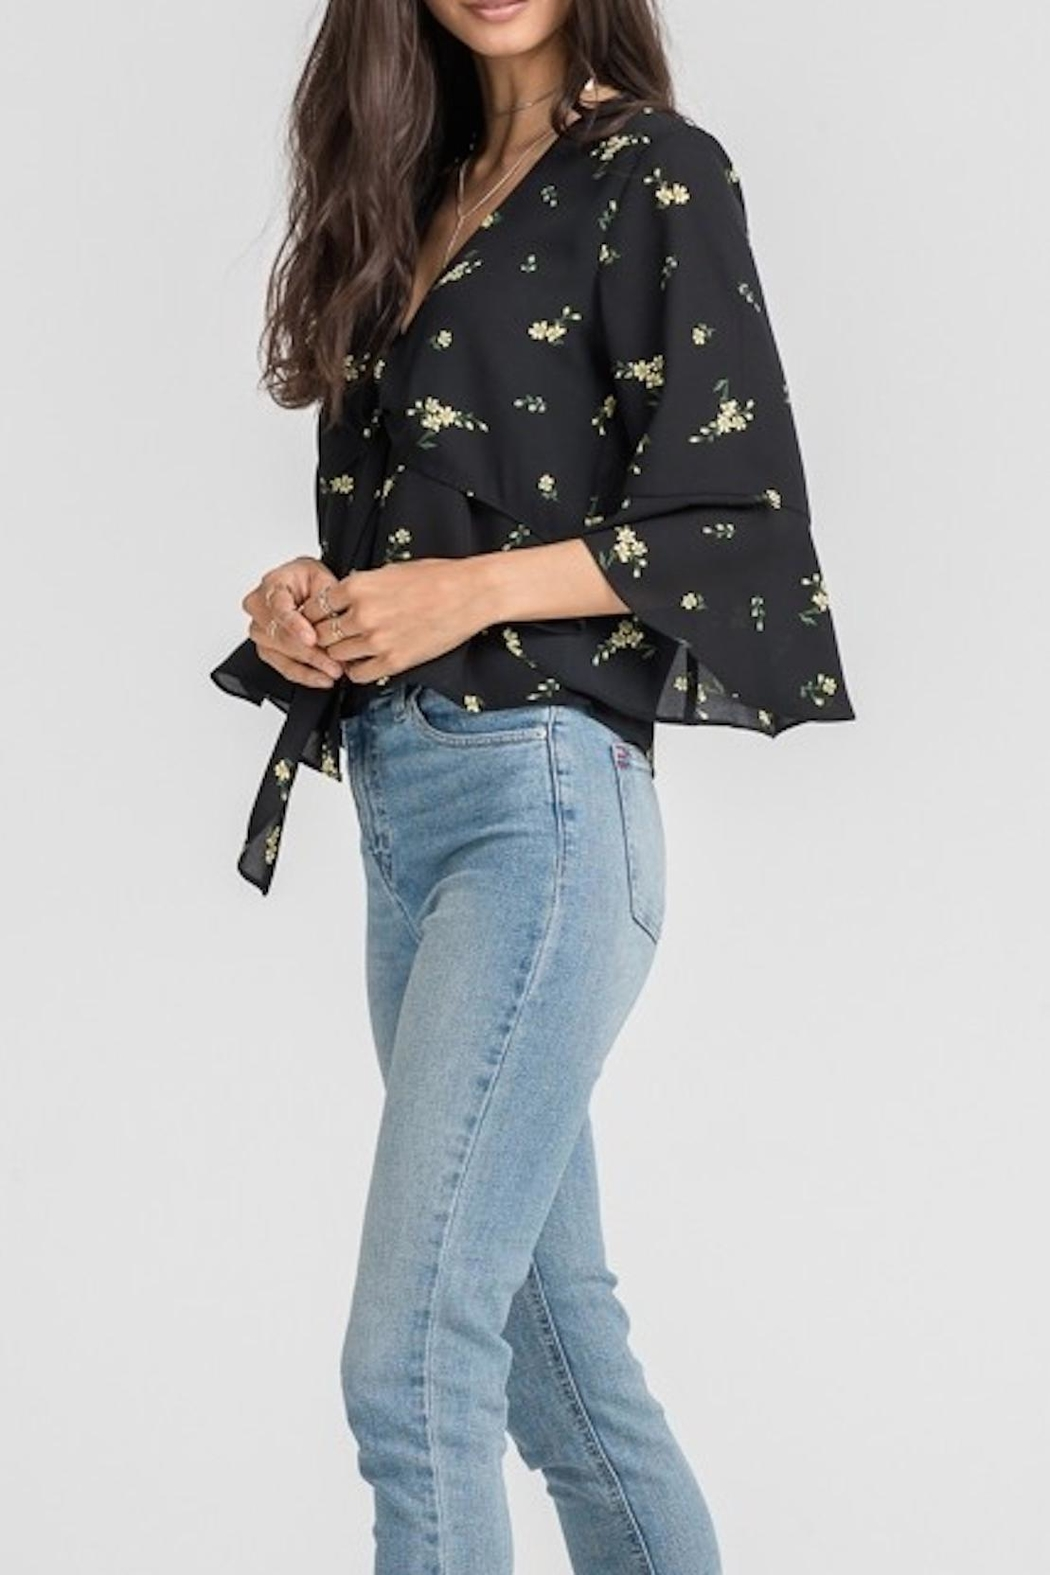 Lush Clothing  Black Floral Blouse - Front Full Image